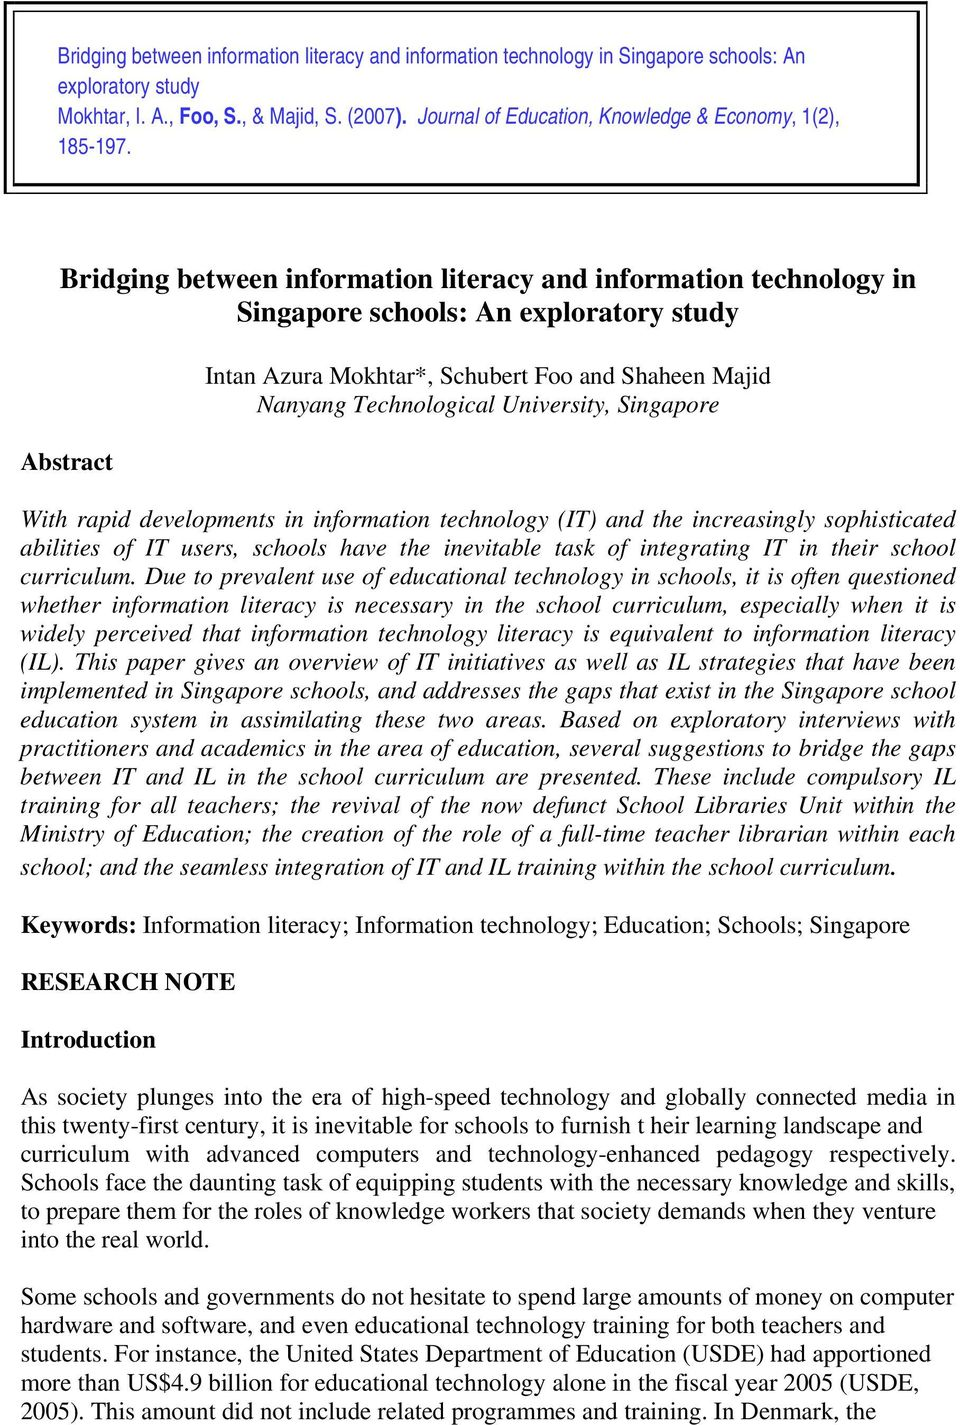 Bridging between information literacy and information technology in Singapore schools: An exploratory study Abstract Intan Azura Mokhtar*, Schubert Foo and Shaheen Majid Nanyang Technological